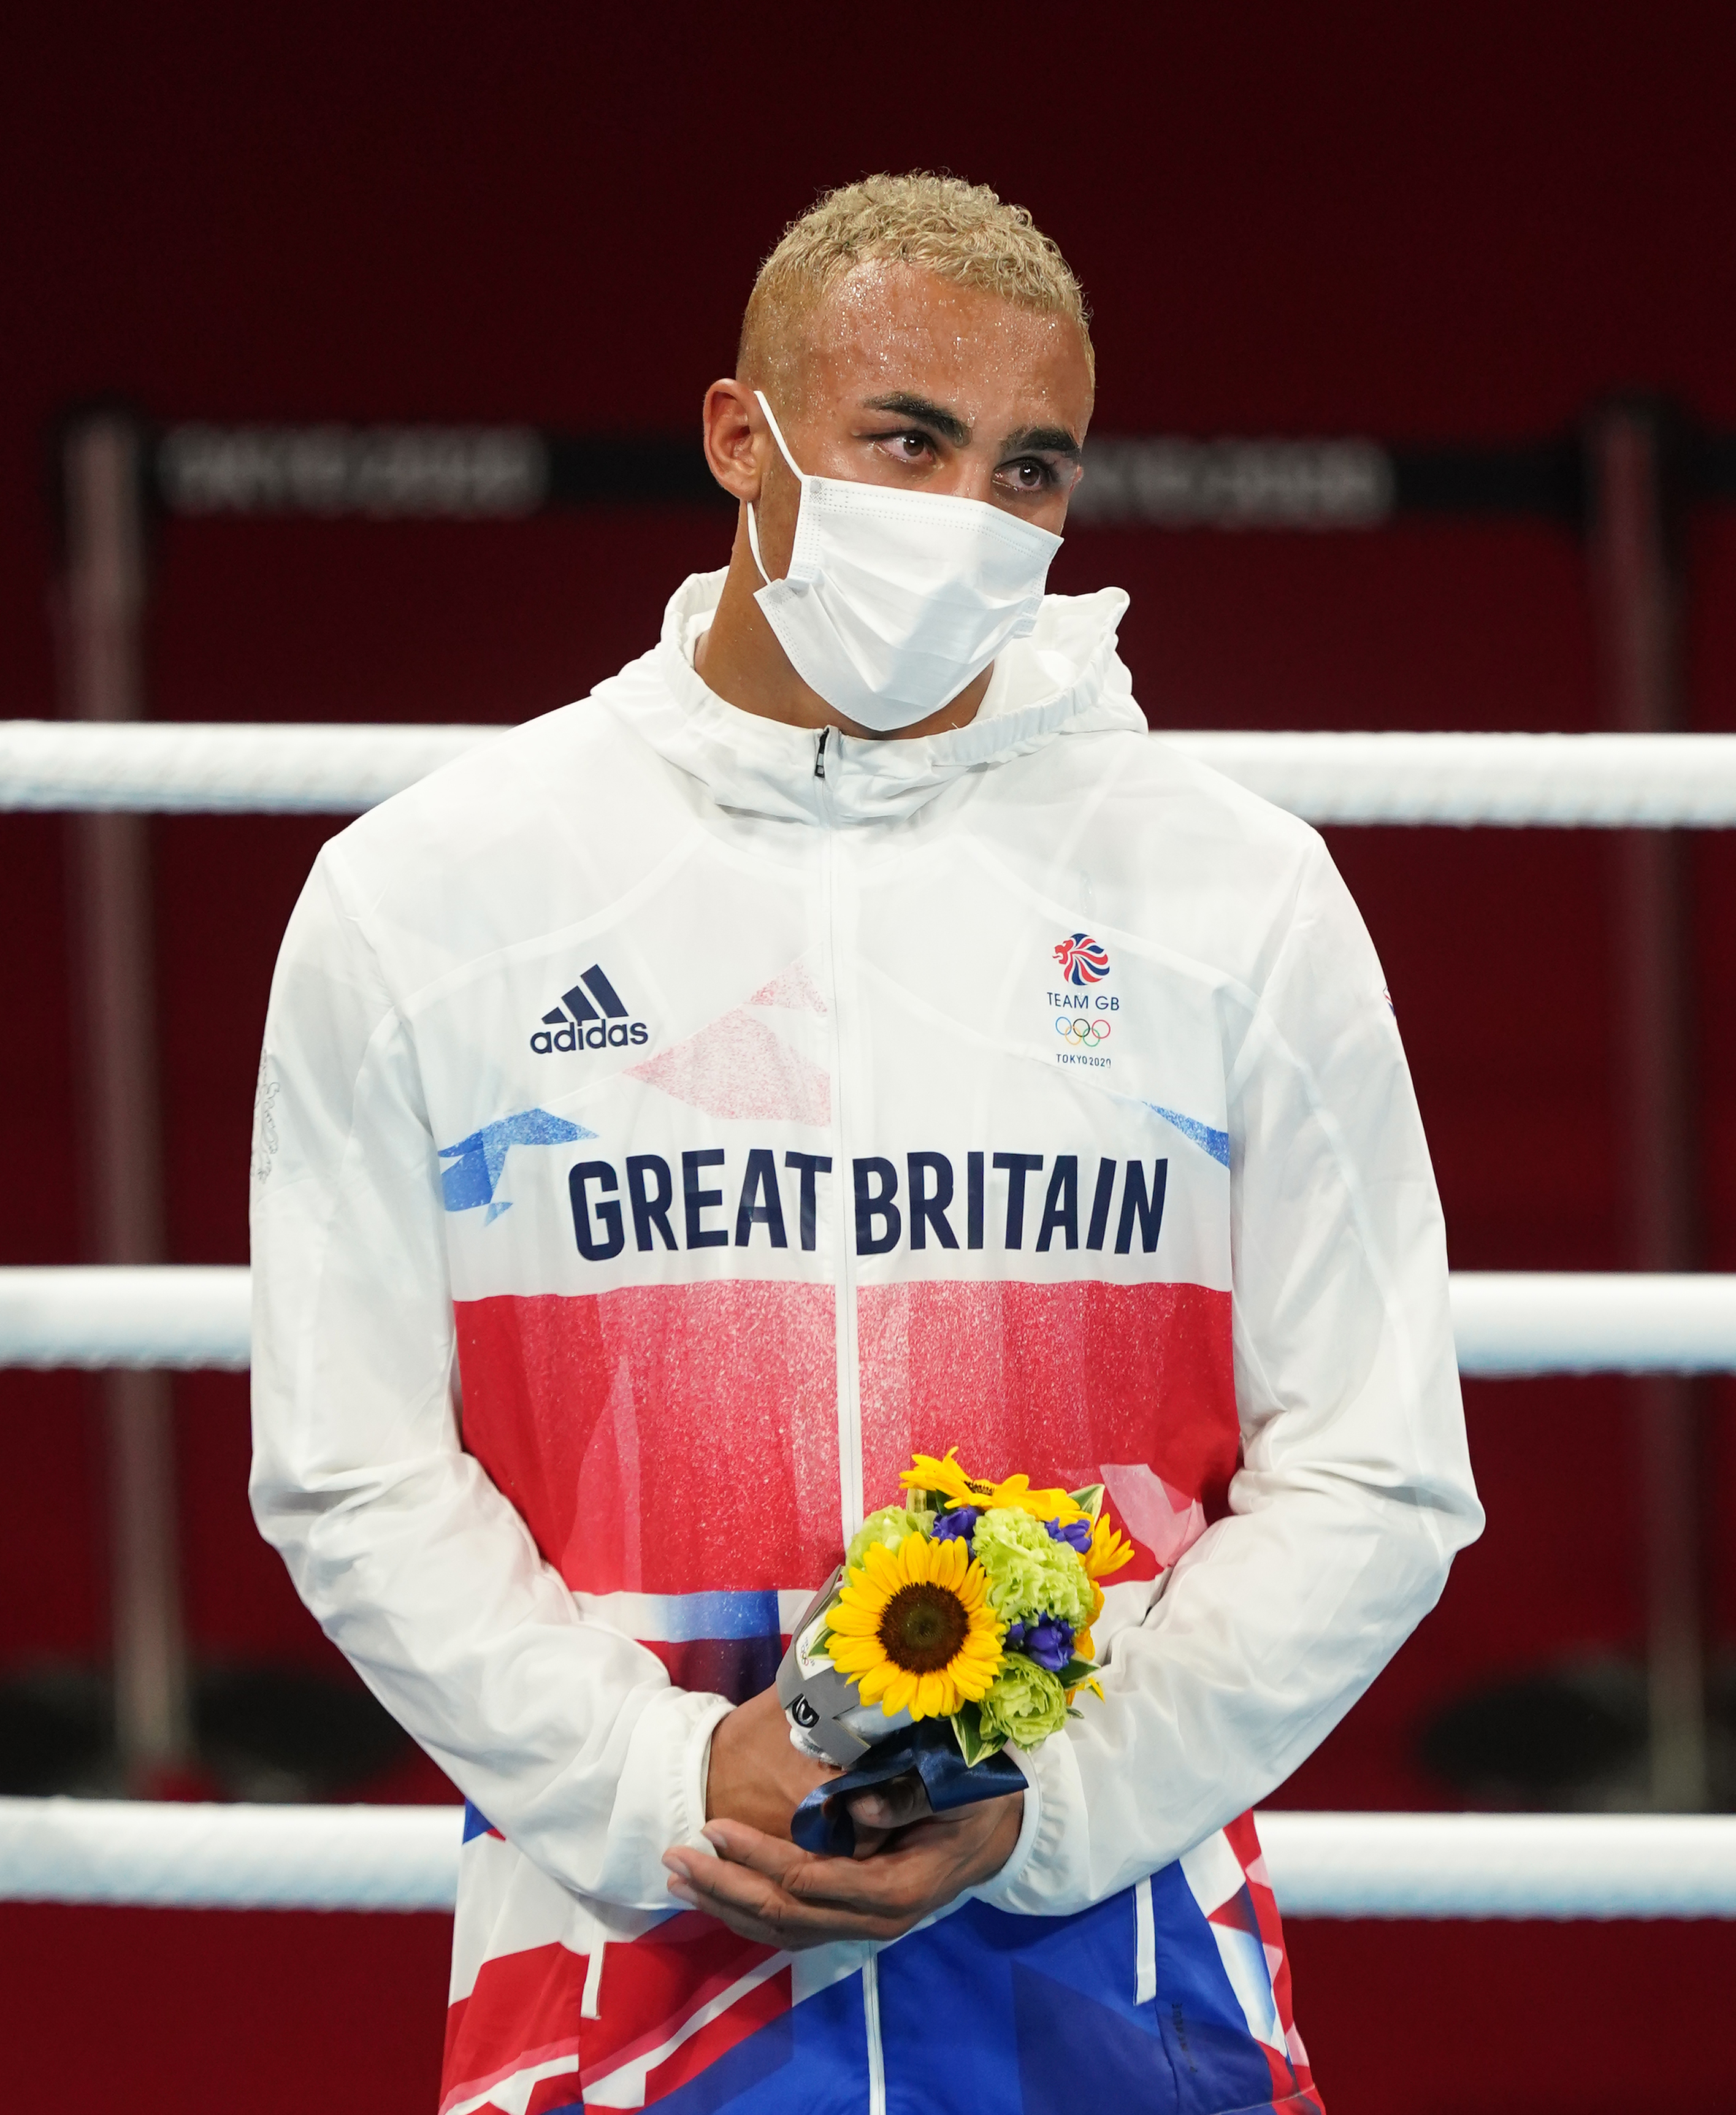 Olympic Boxer Ben Whittaker Refuses To Wear Silver Medal On Podium